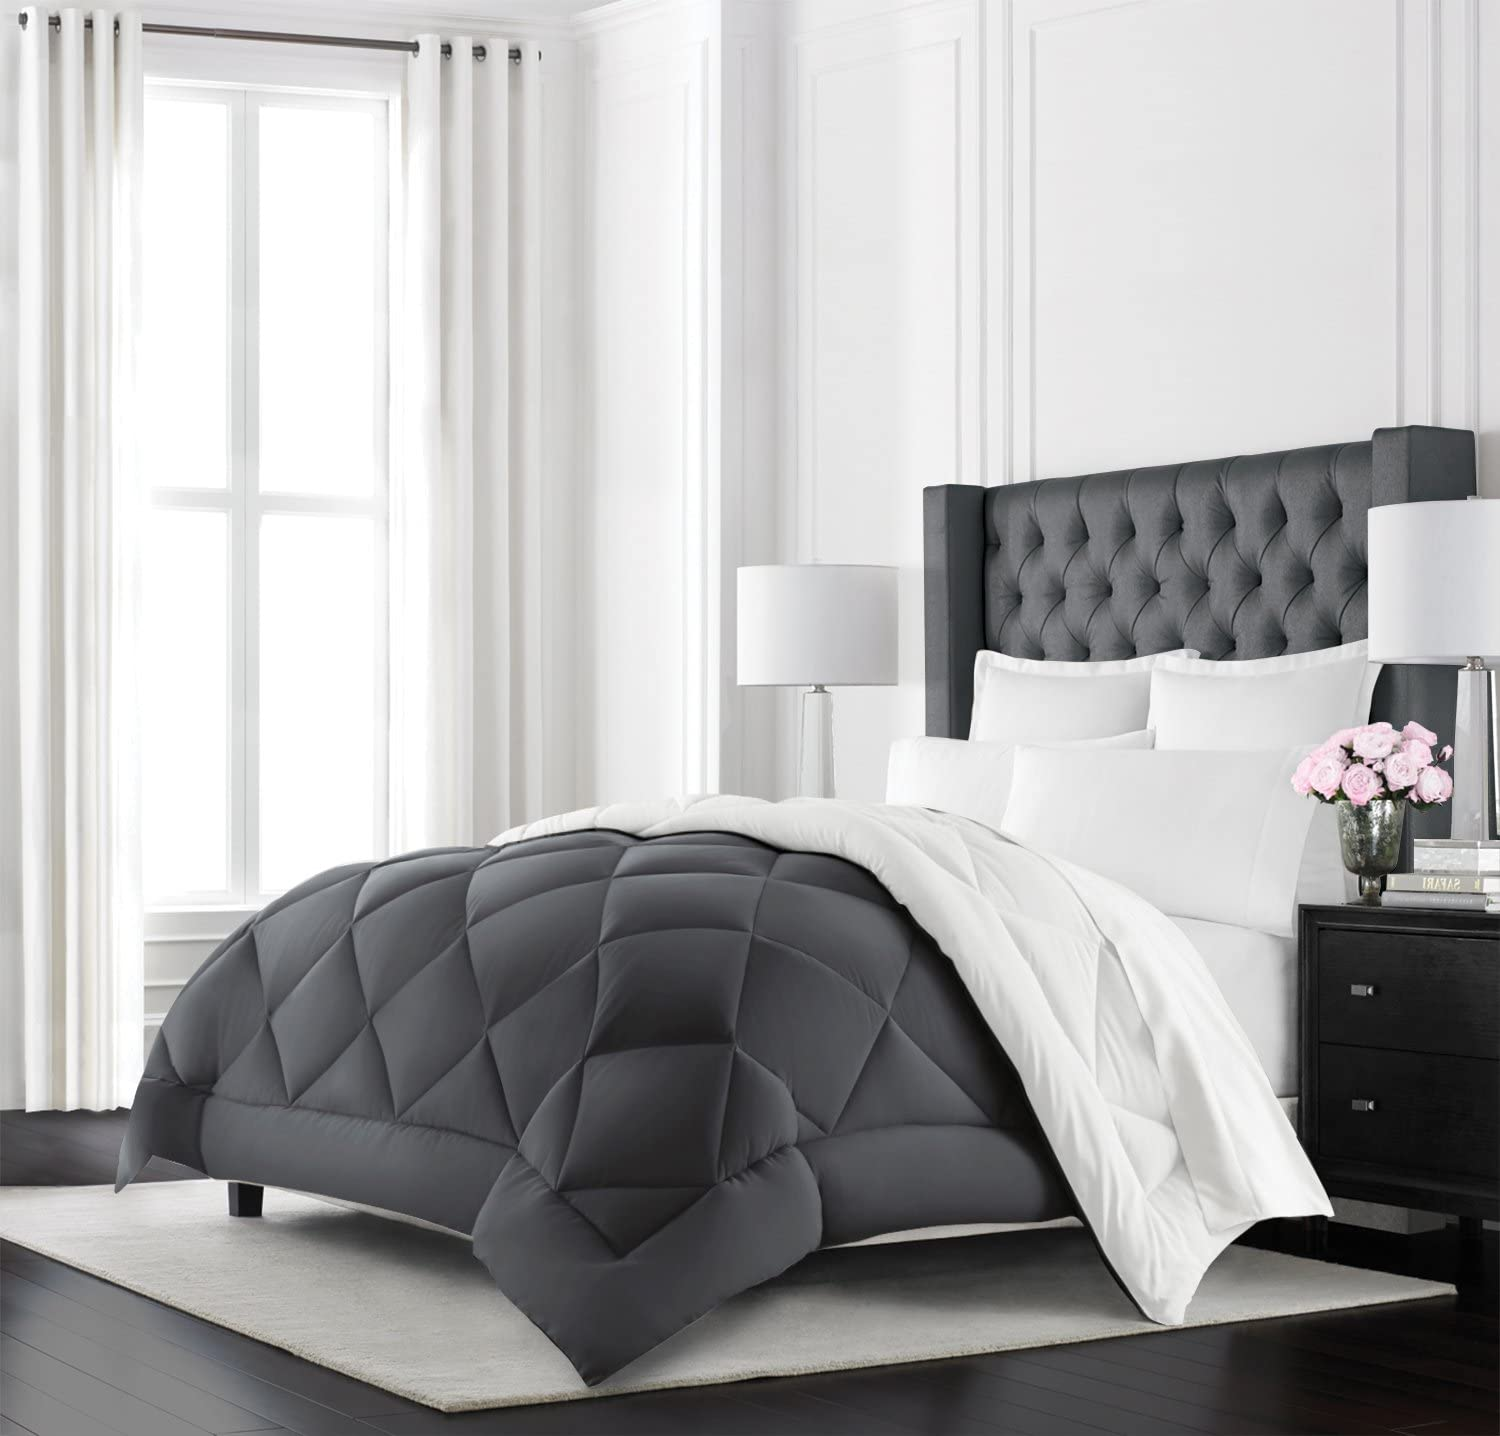 Beckham Hotel Collection Goose Down Alternative Reversible Comforter - All Season - Premium Quality Luxury Hypoallergenic Comforter - Full/Queen - Grey/White